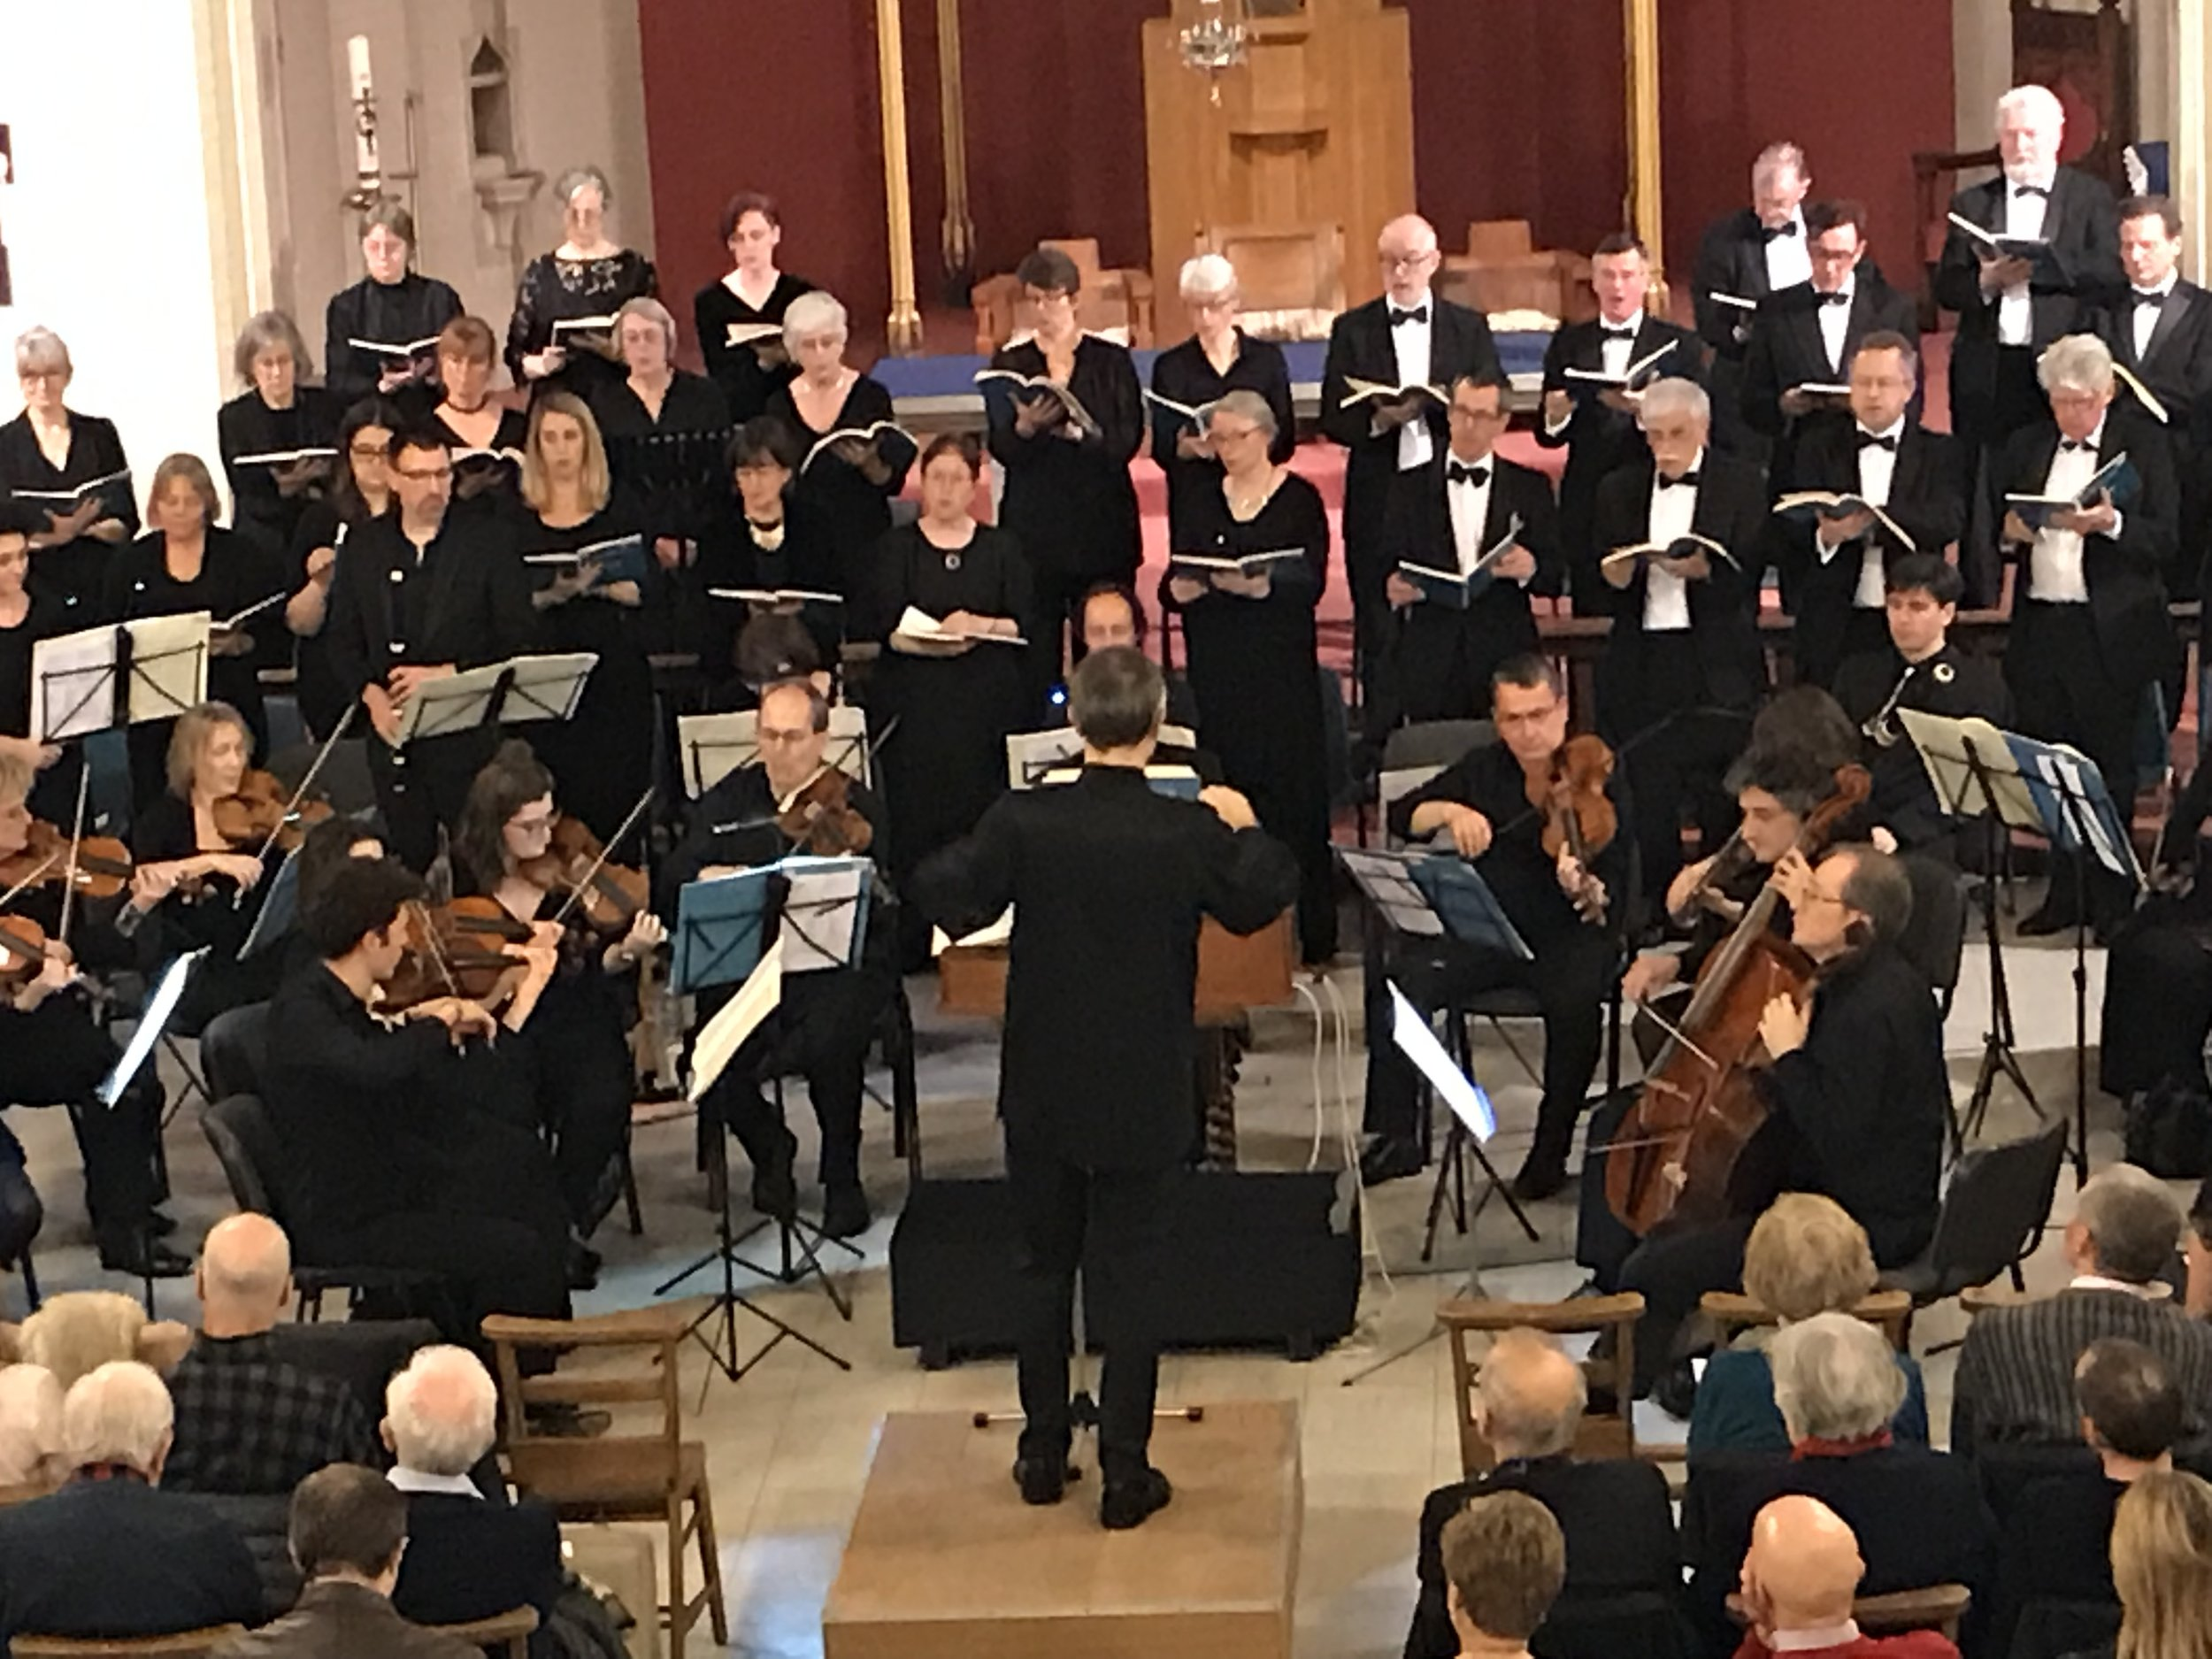 Douglas Lee conducts The Ariel Consort of London, who give annual concerts at St Matthew's Church